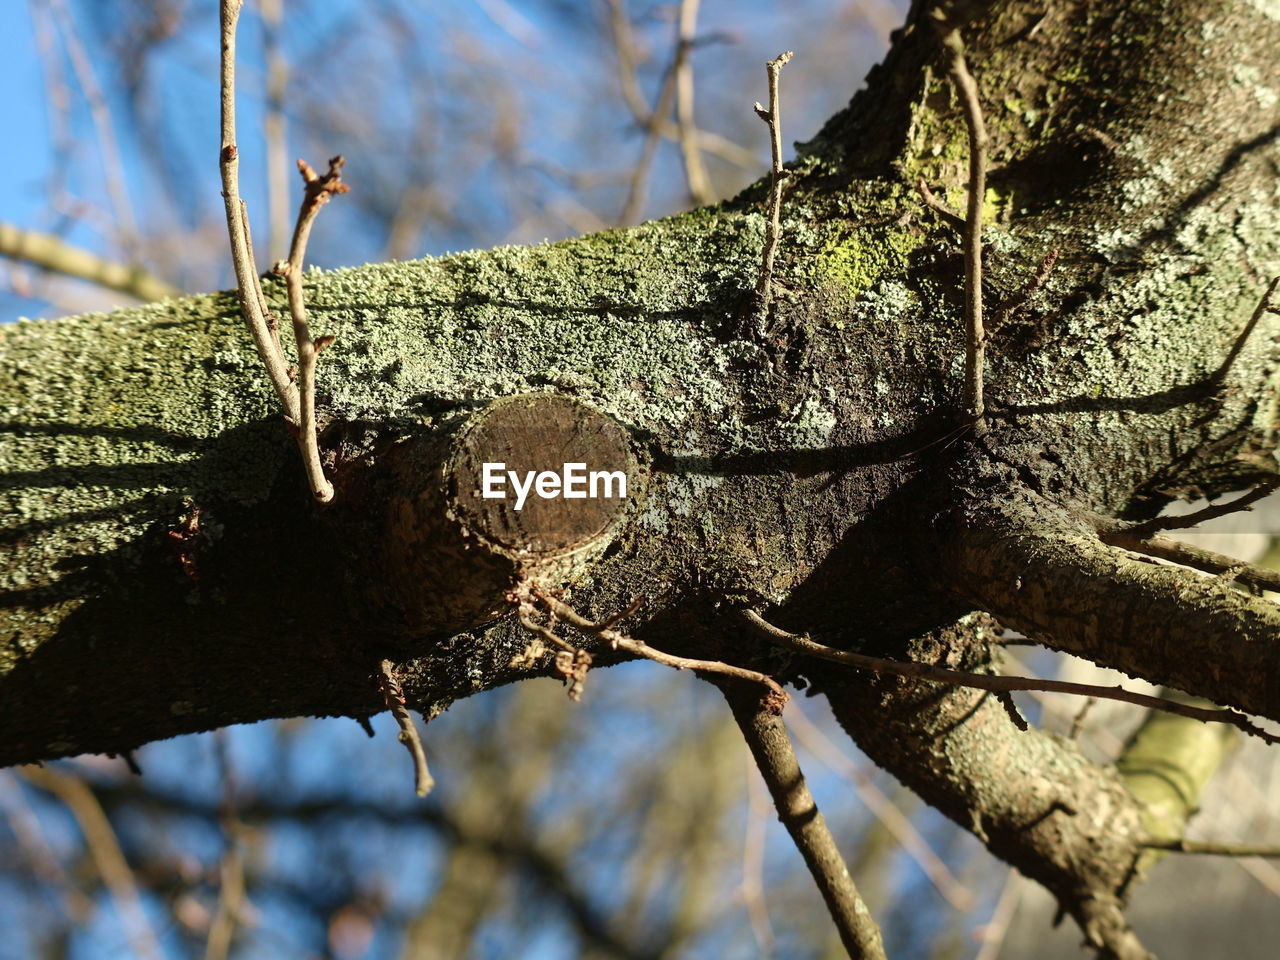 tree, branch, day, outdoors, no people, close-up, low angle view, nature, focus on foreground, tree trunk, growth, sunlight, sky, animal themes